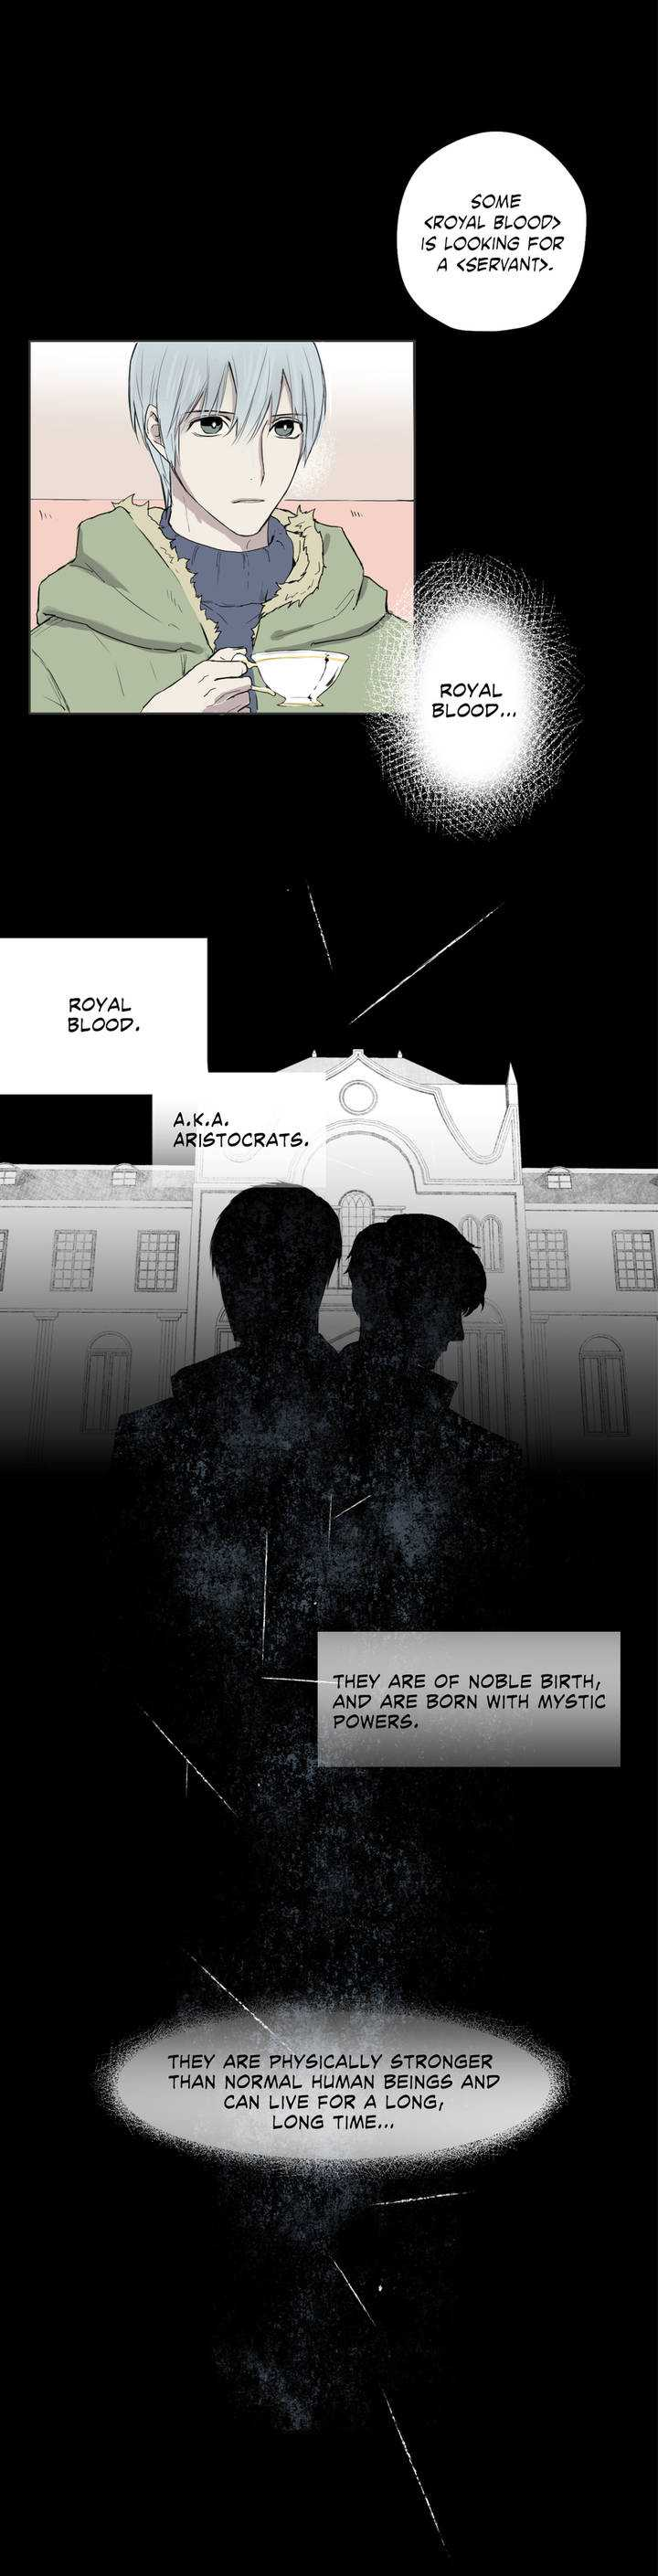 Royal Servant - Chapter 2